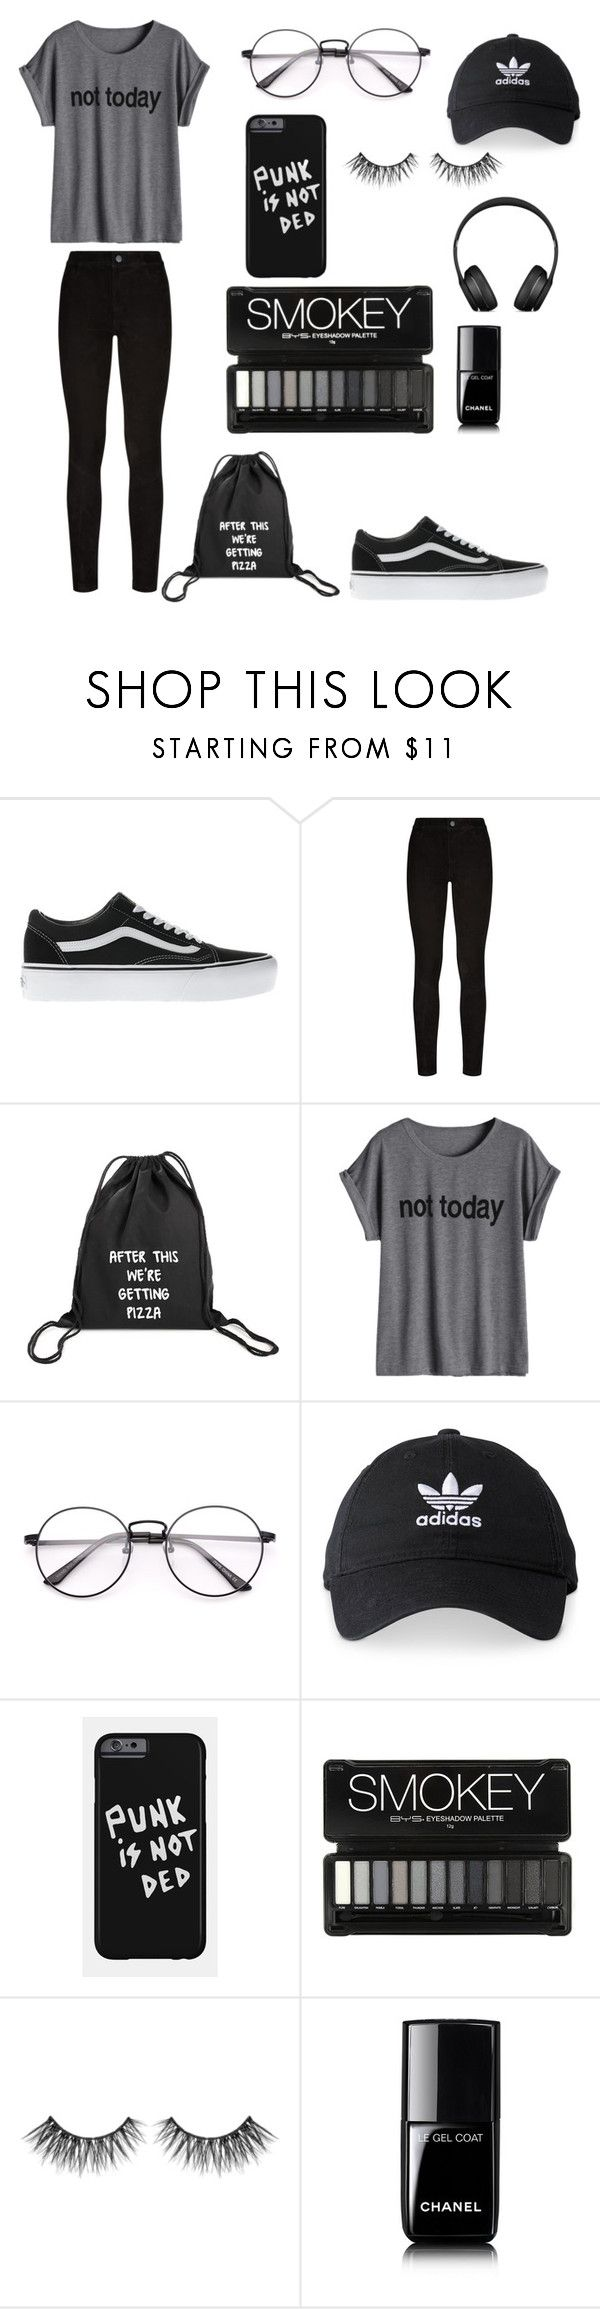 """""""Untitled #1"""" by darya-andreea ❤ liked on Polyvore featuring Vans, Paige Denim, adidas and Chanel"""